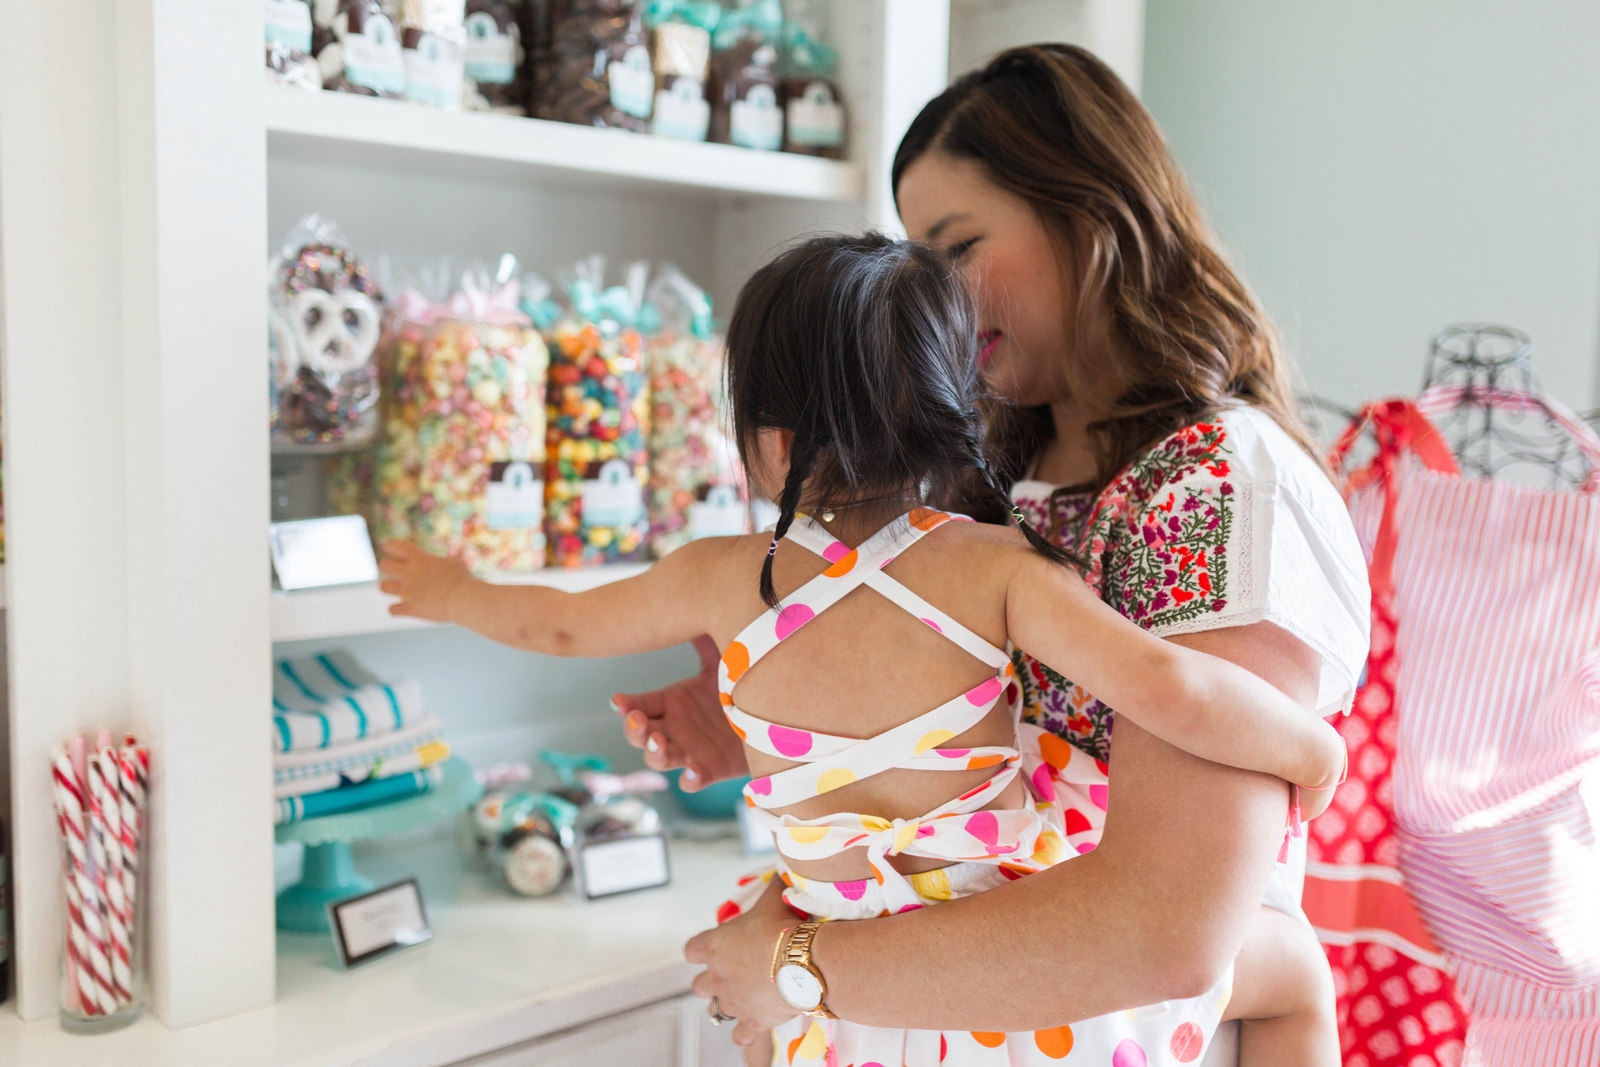 Mommy and Me Outfits: Colorful Floral Top and Polka Dots by fashion blogger Sandy A La Mode